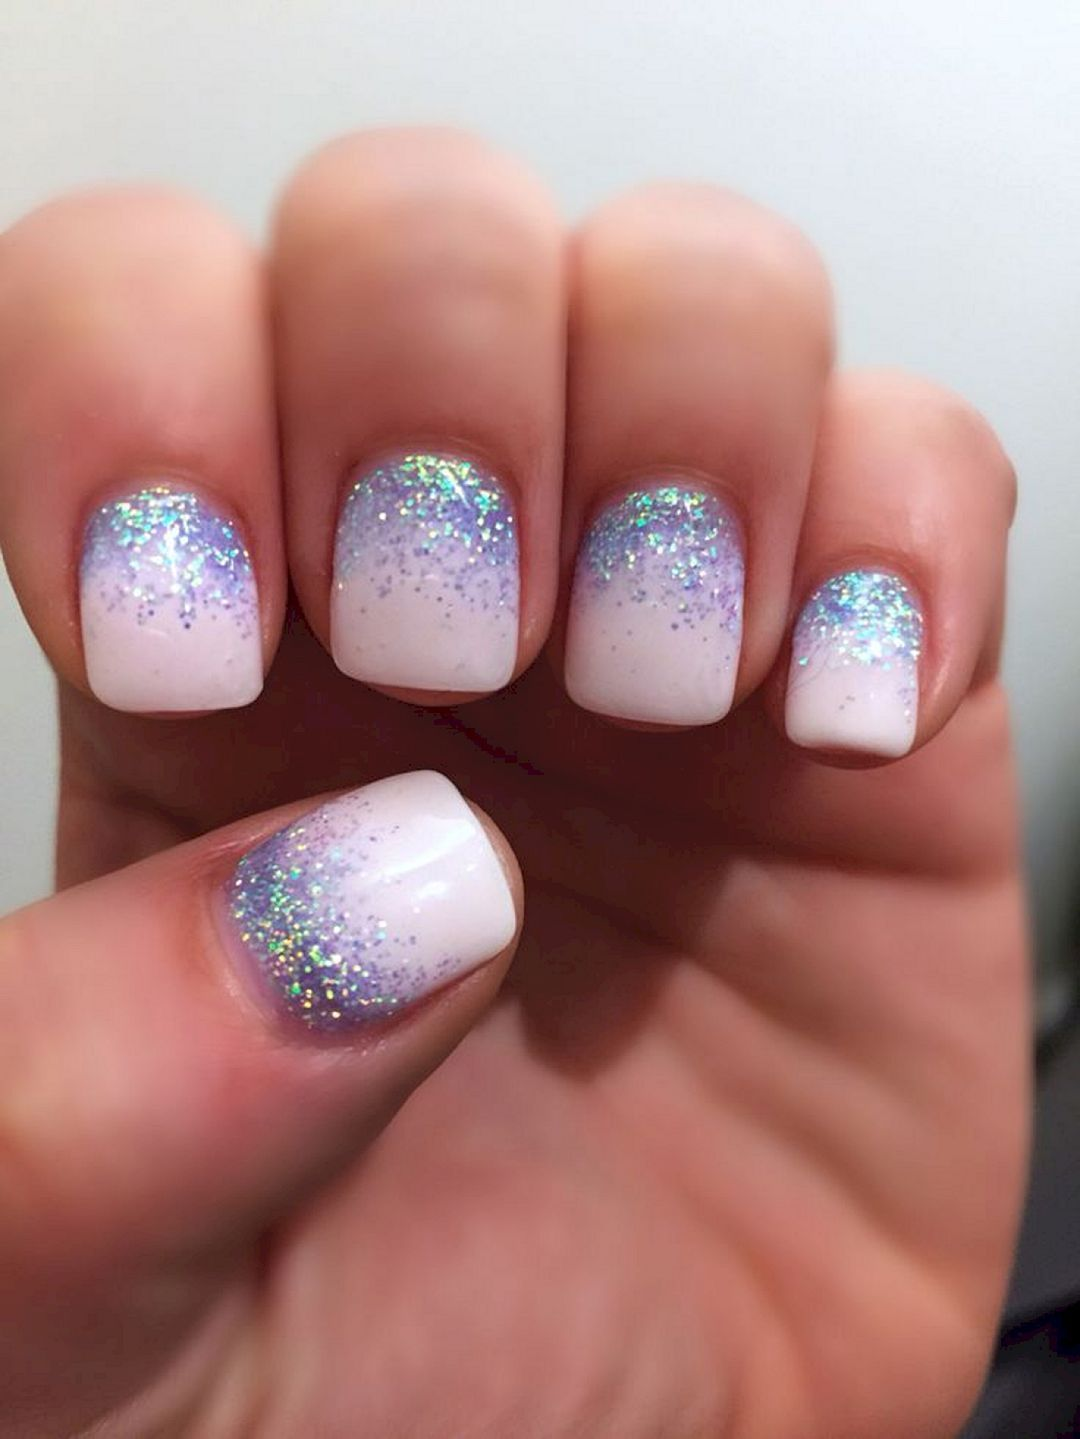 The Best So Pretty Acrylic Nails Ideas And Inspirations No 08 Pastel Glitter Nails Glitter Nails Acrylic Acrylic Nails Glitter Ombre